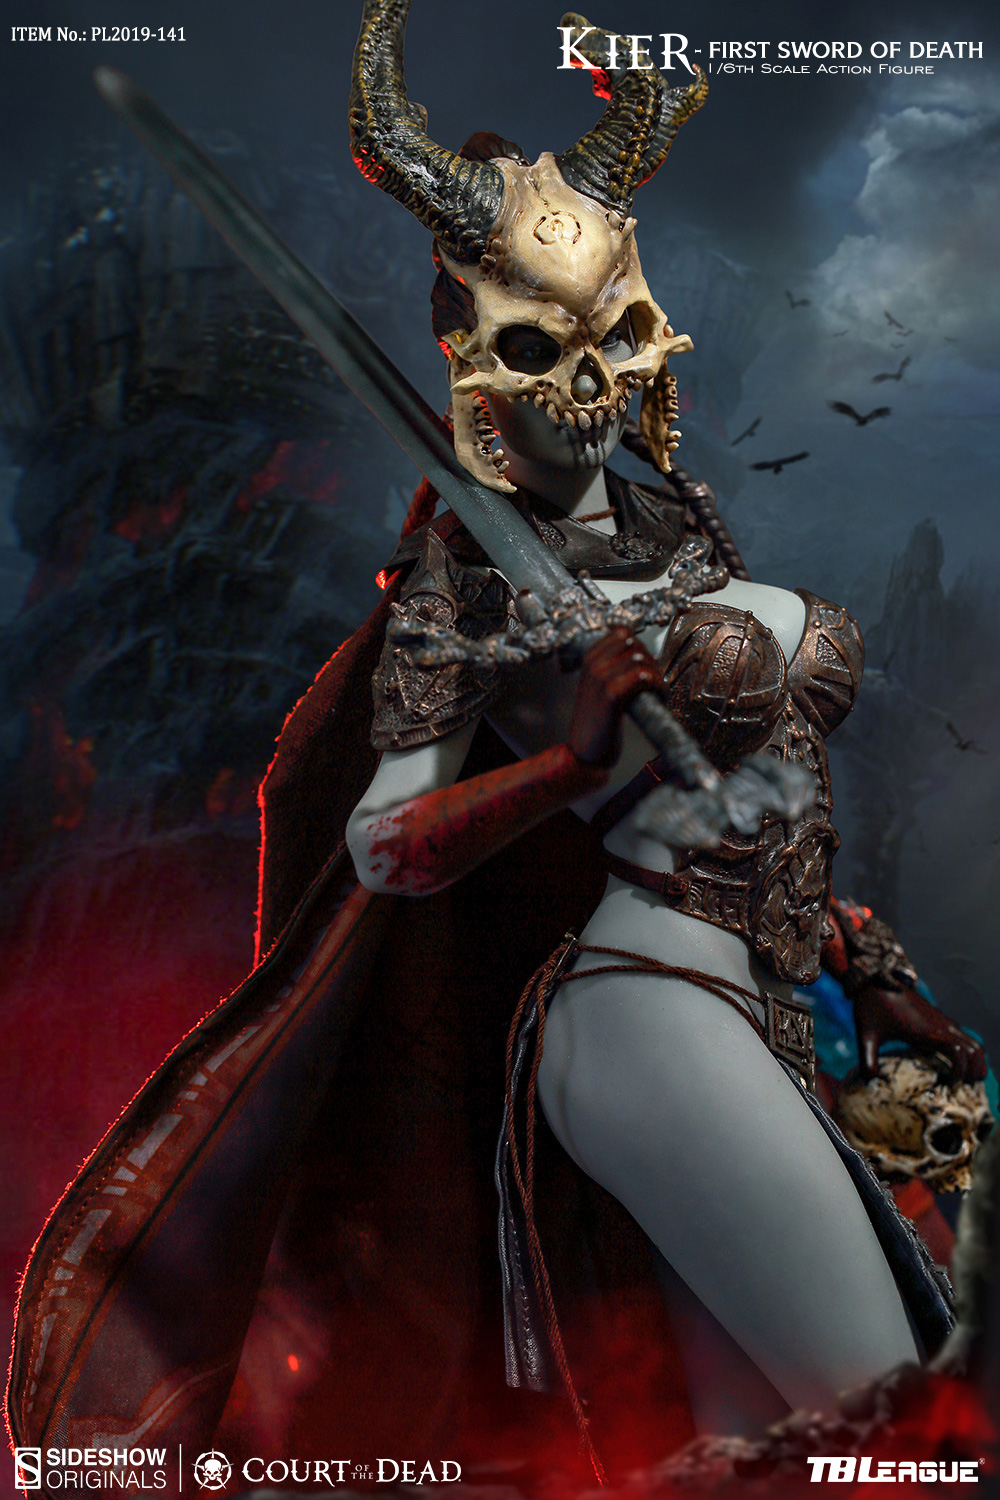 horror - NEW PRODUCT: TBLeague & Sideshow: 1/6 Court of the Dead - Valkyrie Cole / Kier movable doll (PL2019-141) 16260610